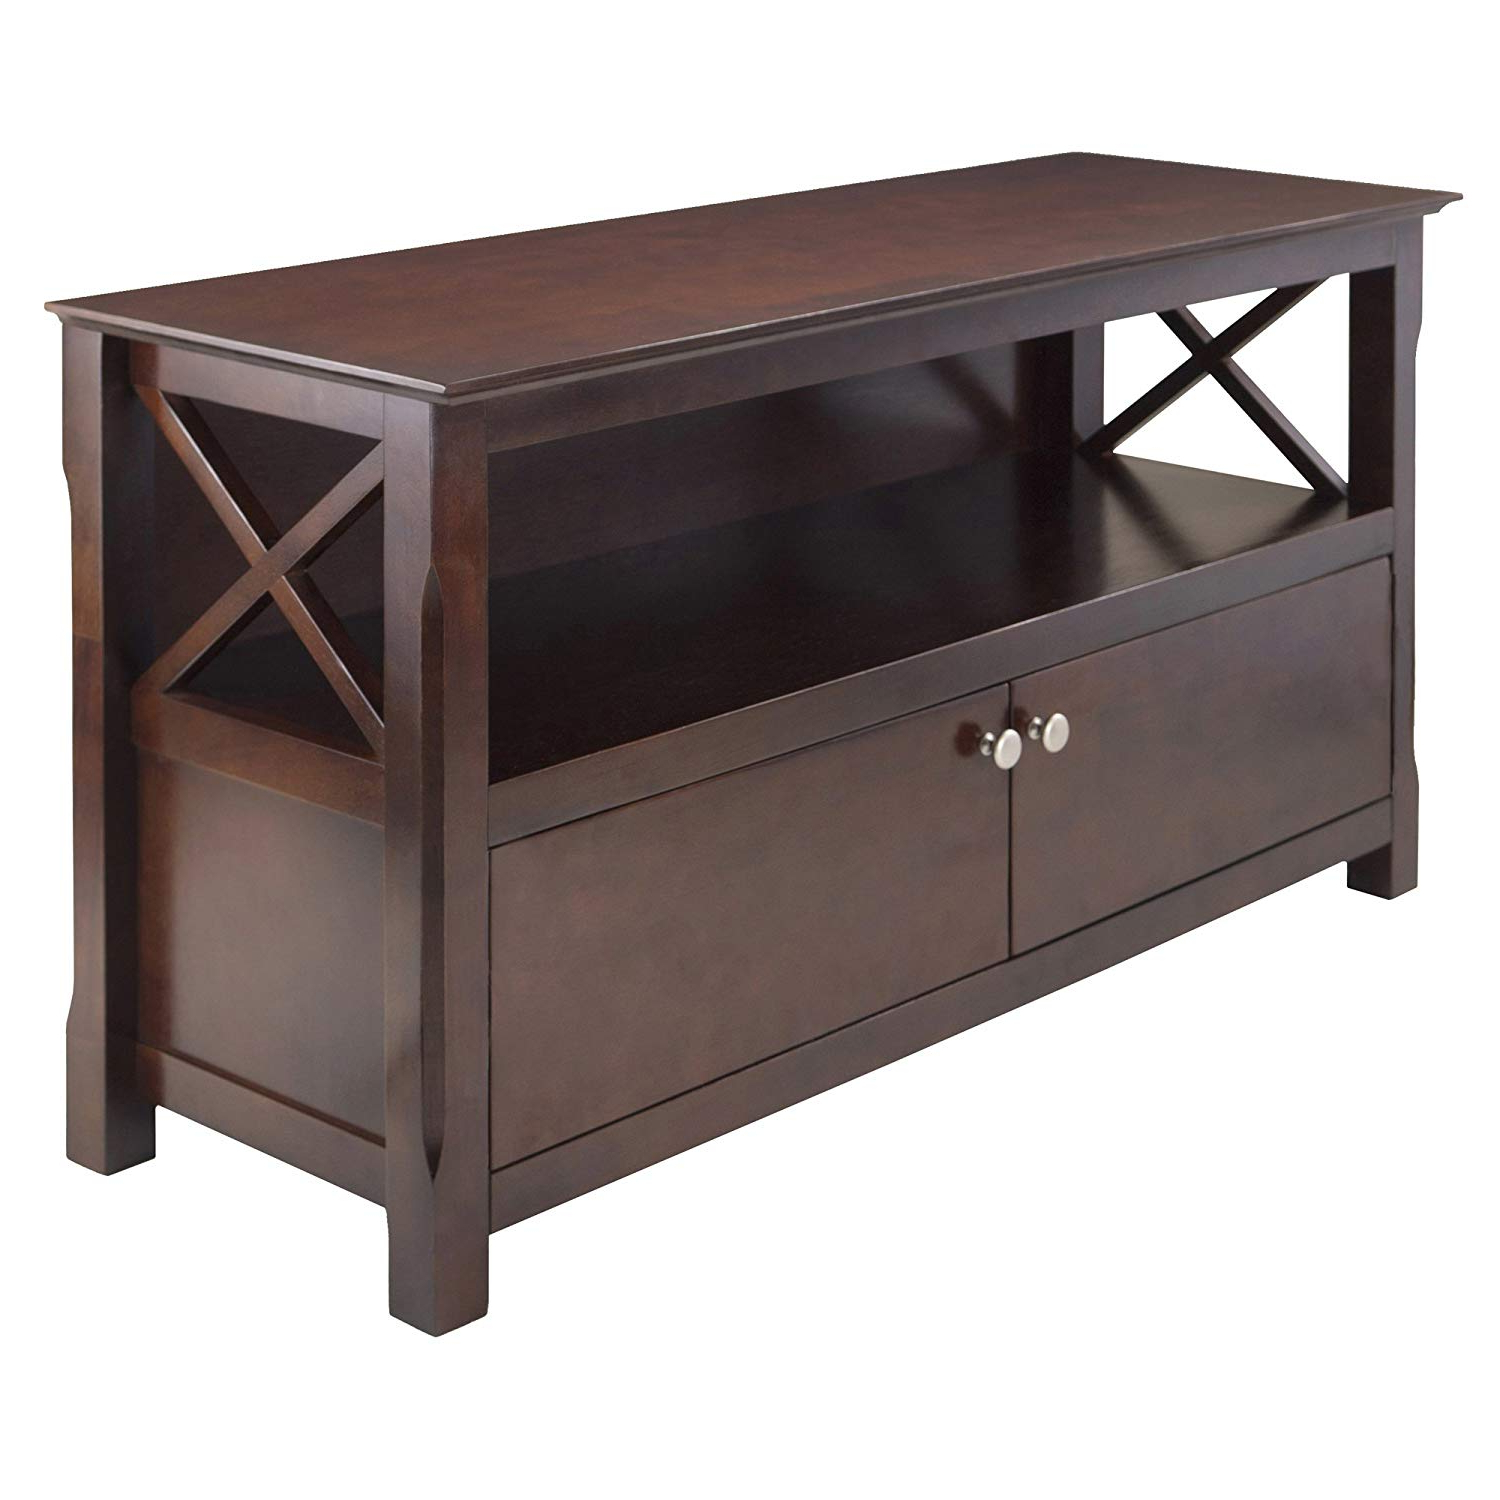 Most Recent Amazon: Winsome Wood Xola Tv Stand: Kitchen & Dining With Wooden Tv Stands (View 3 of 20)